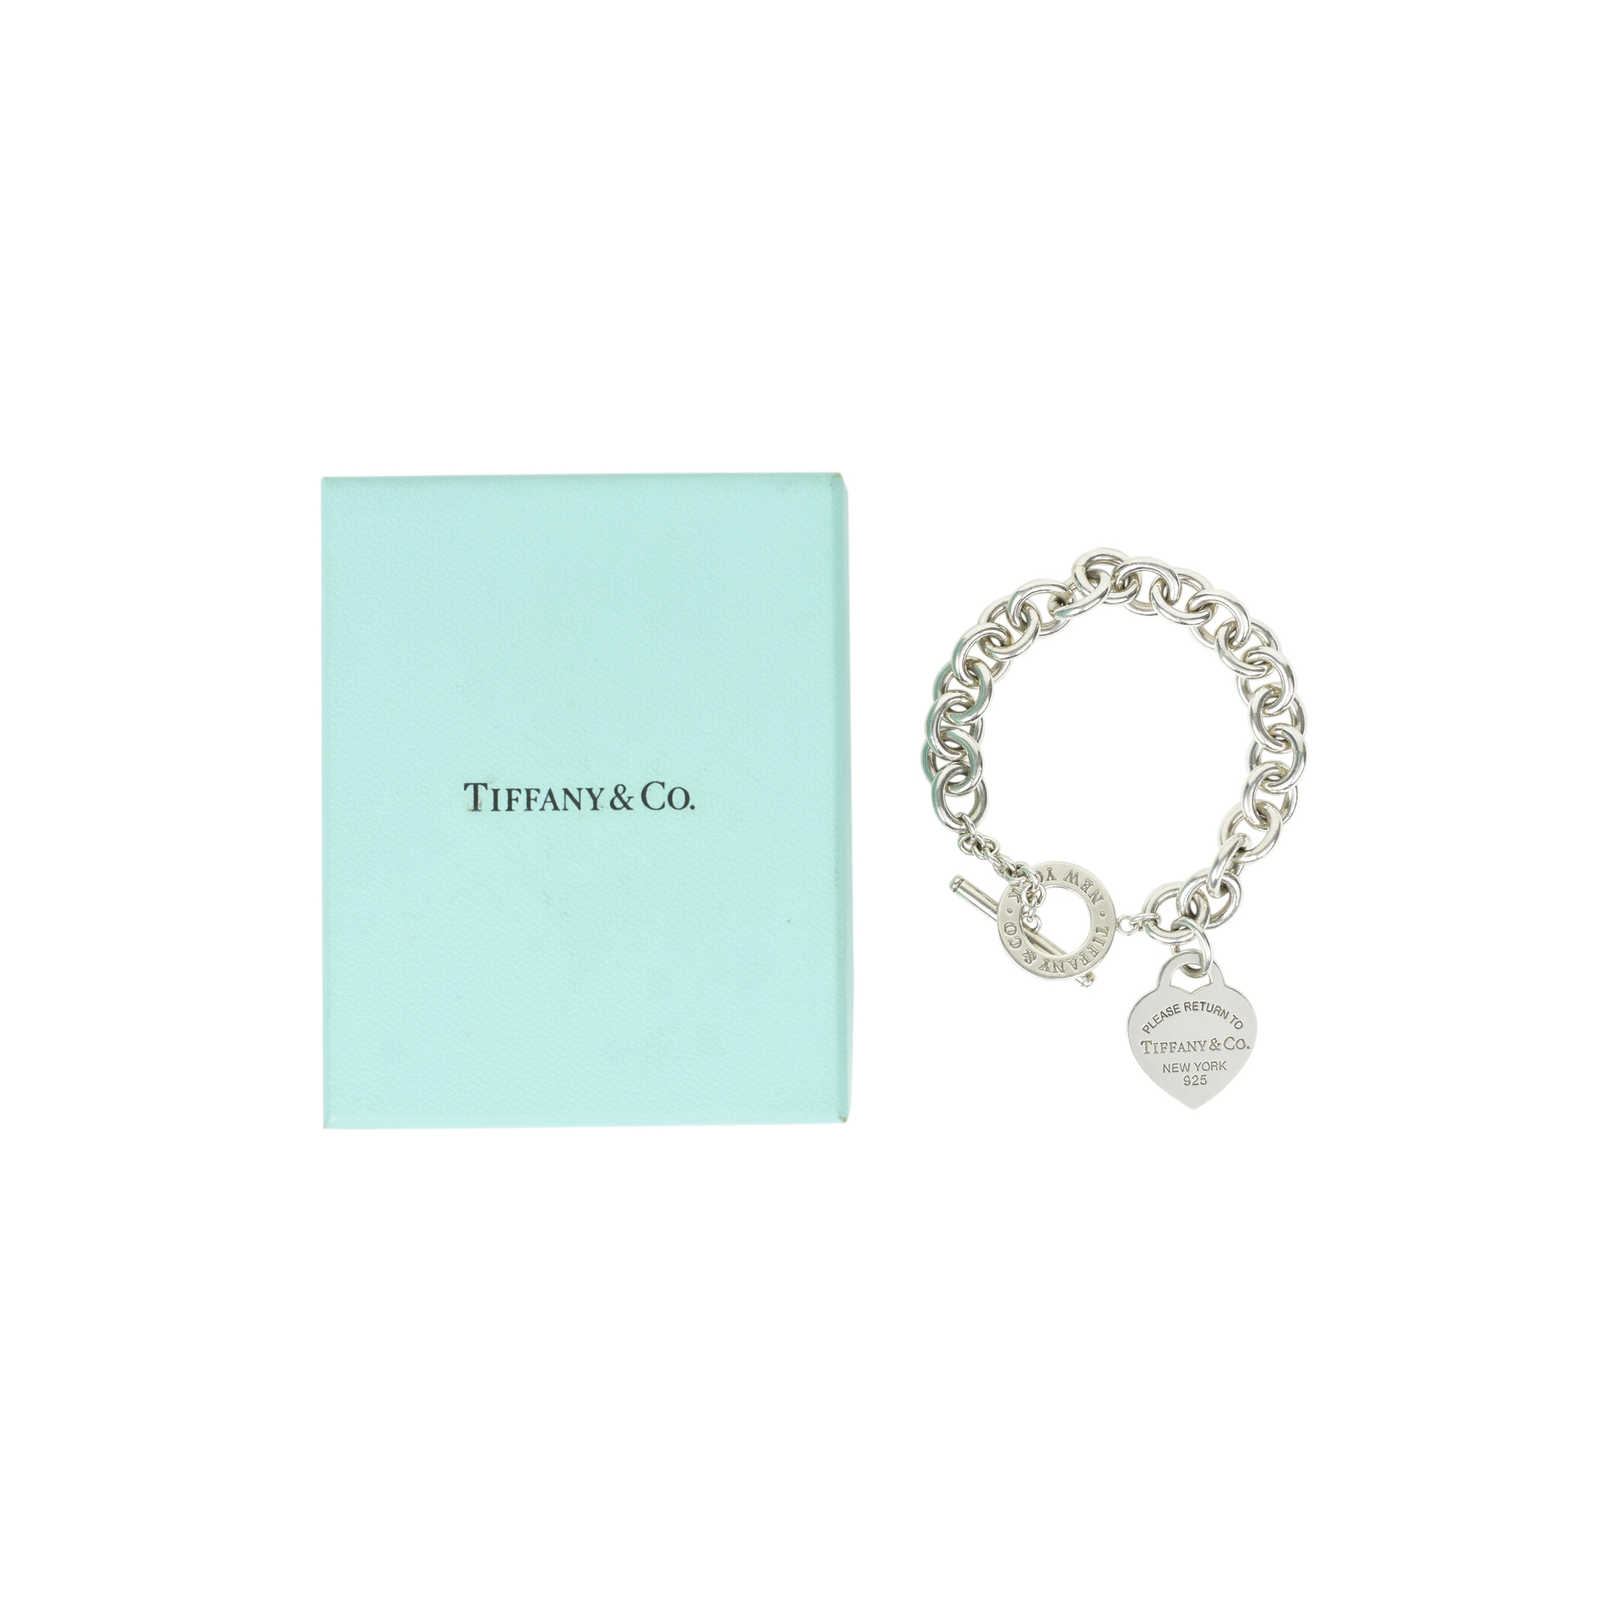 bb19484a5 ... Authentic Second Hand Tiffany & Co Heart Tag Toggle Bracelet  (PSS-428-00002